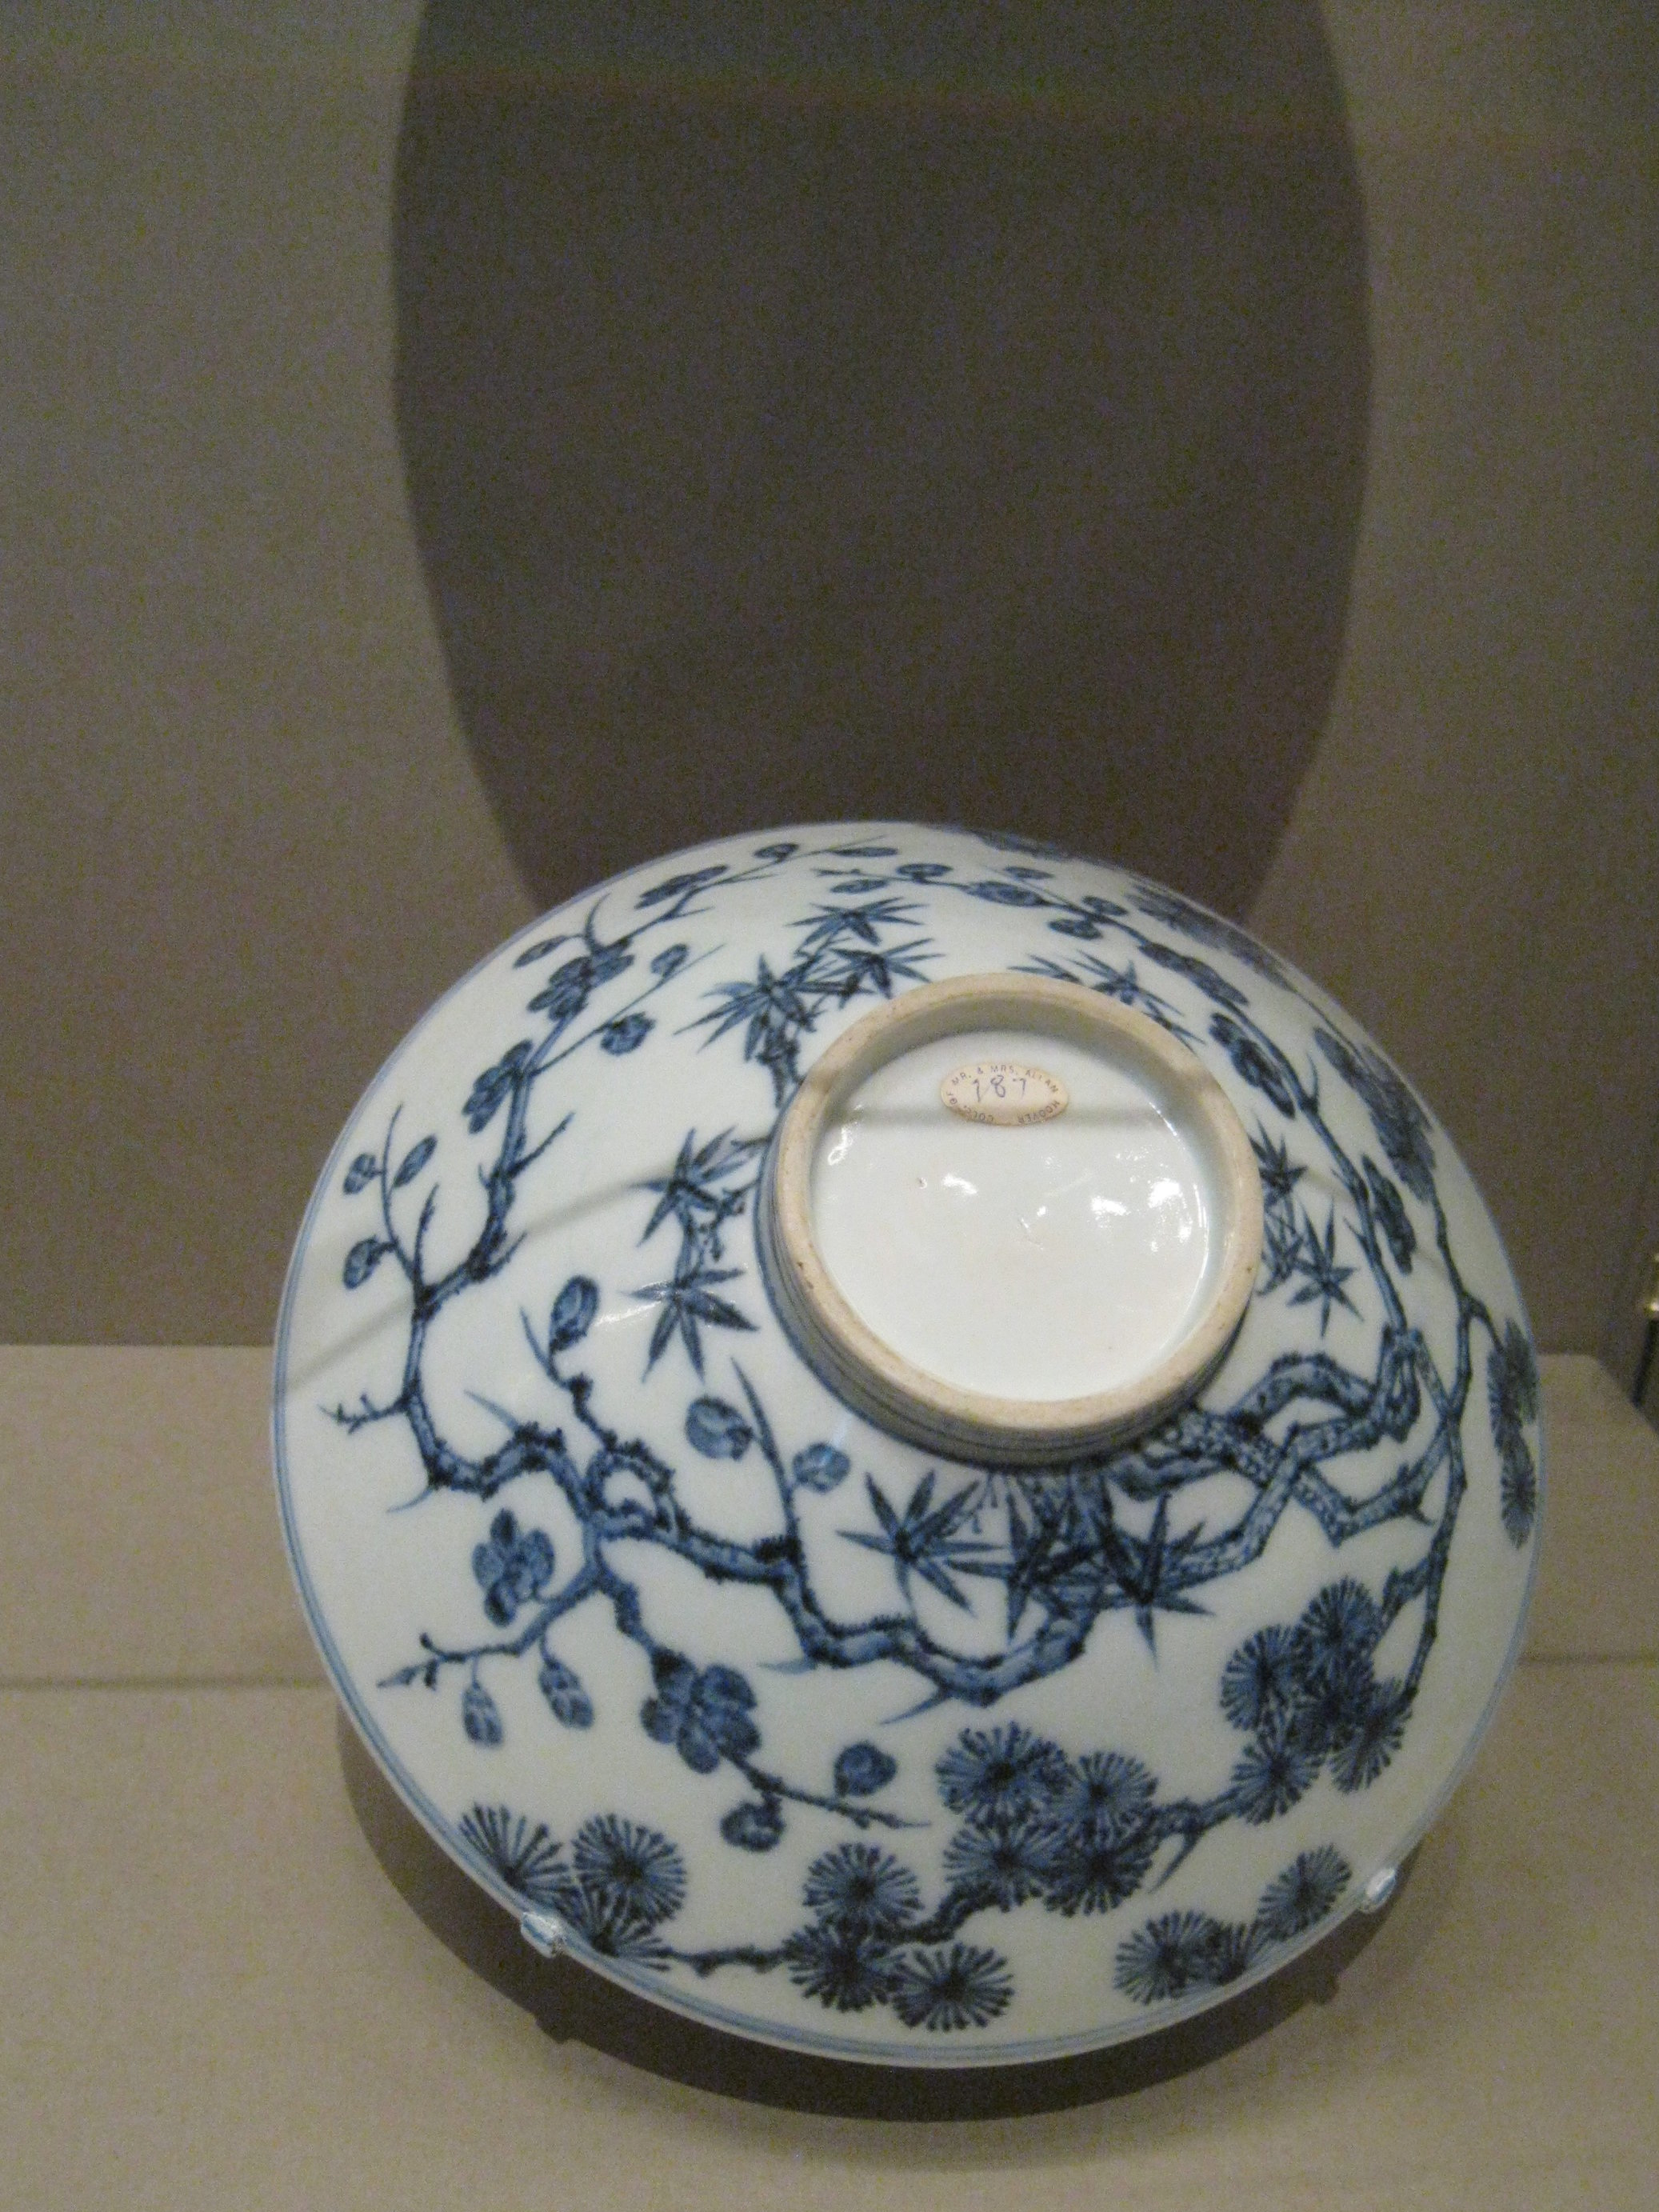 Bowl with the three friends of Winter ( Plum, Bamboo, Pine) circa 1426-1435